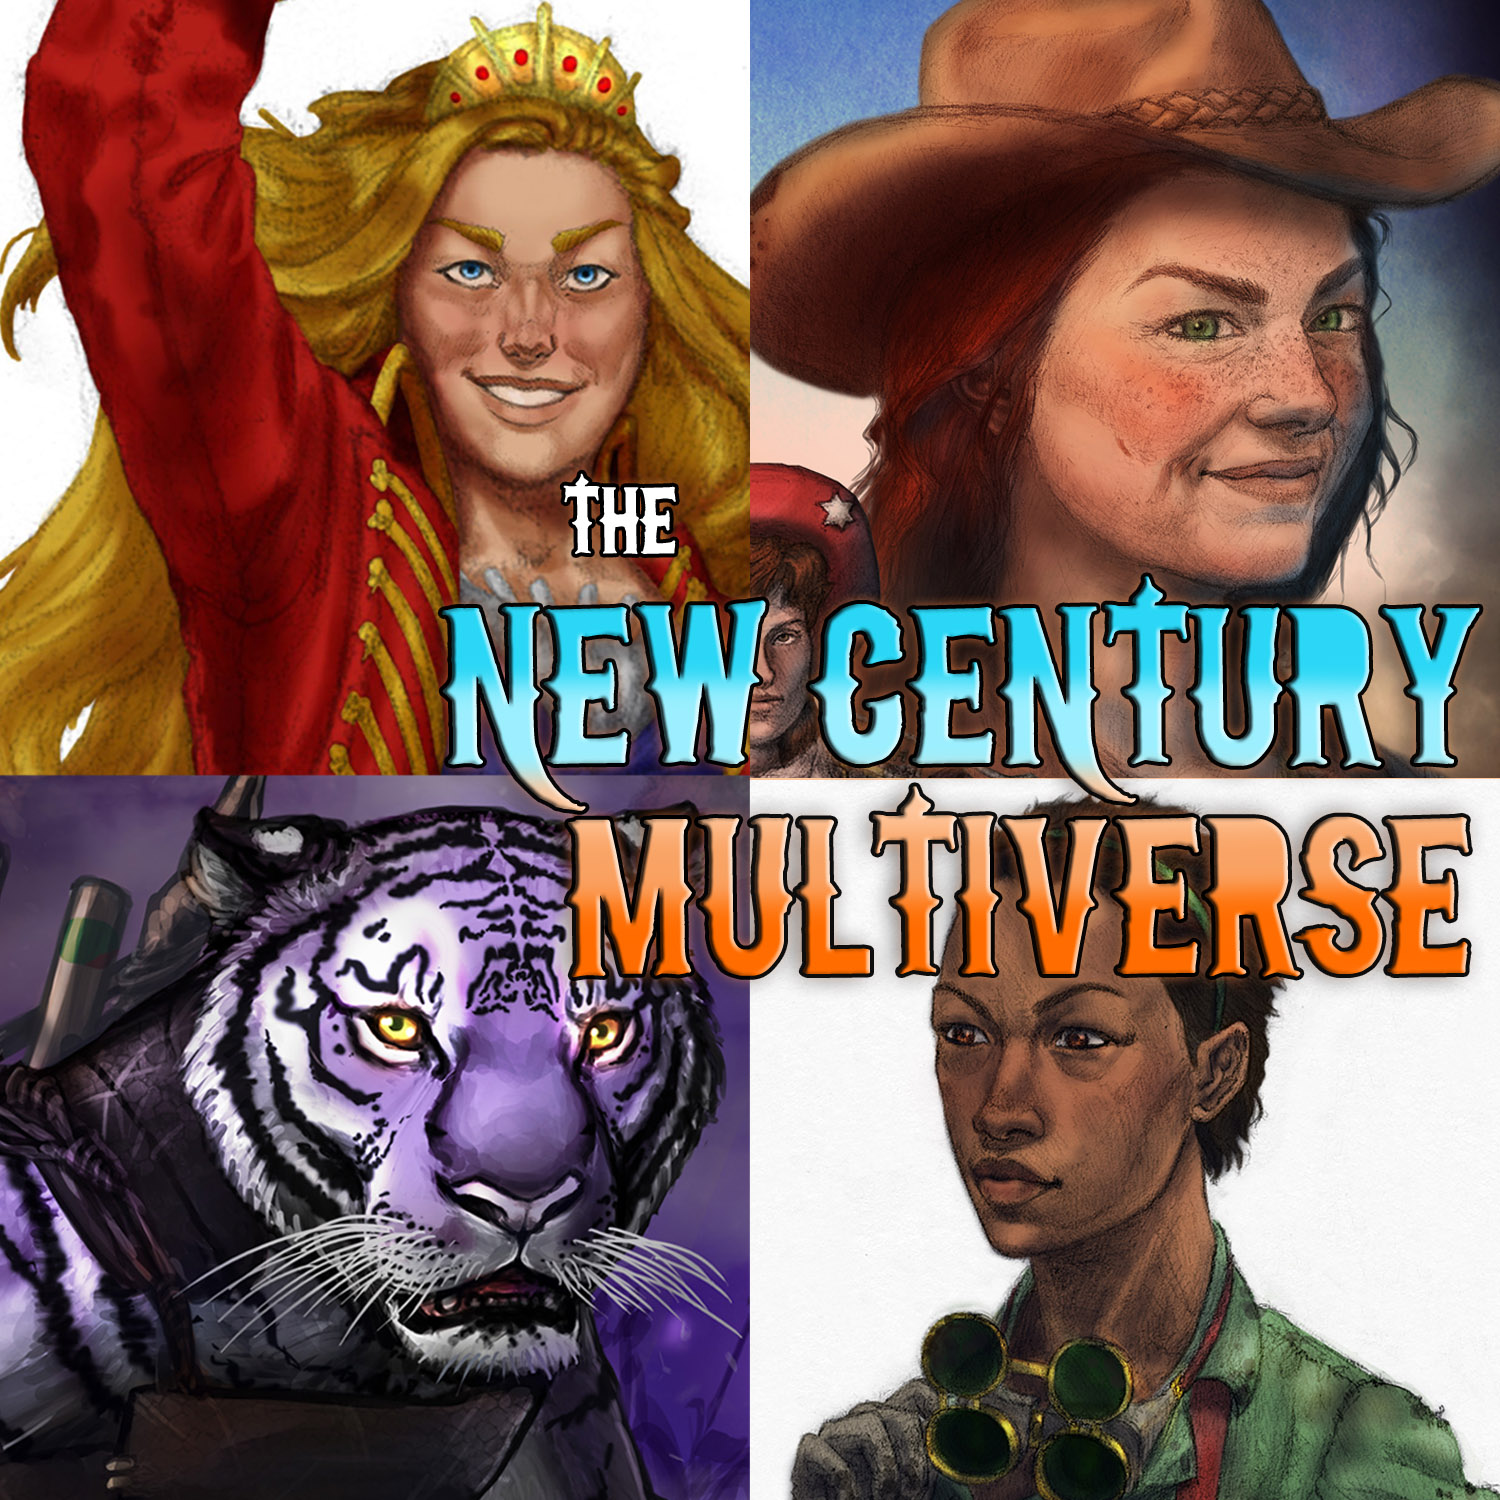 The New Century Multiverse